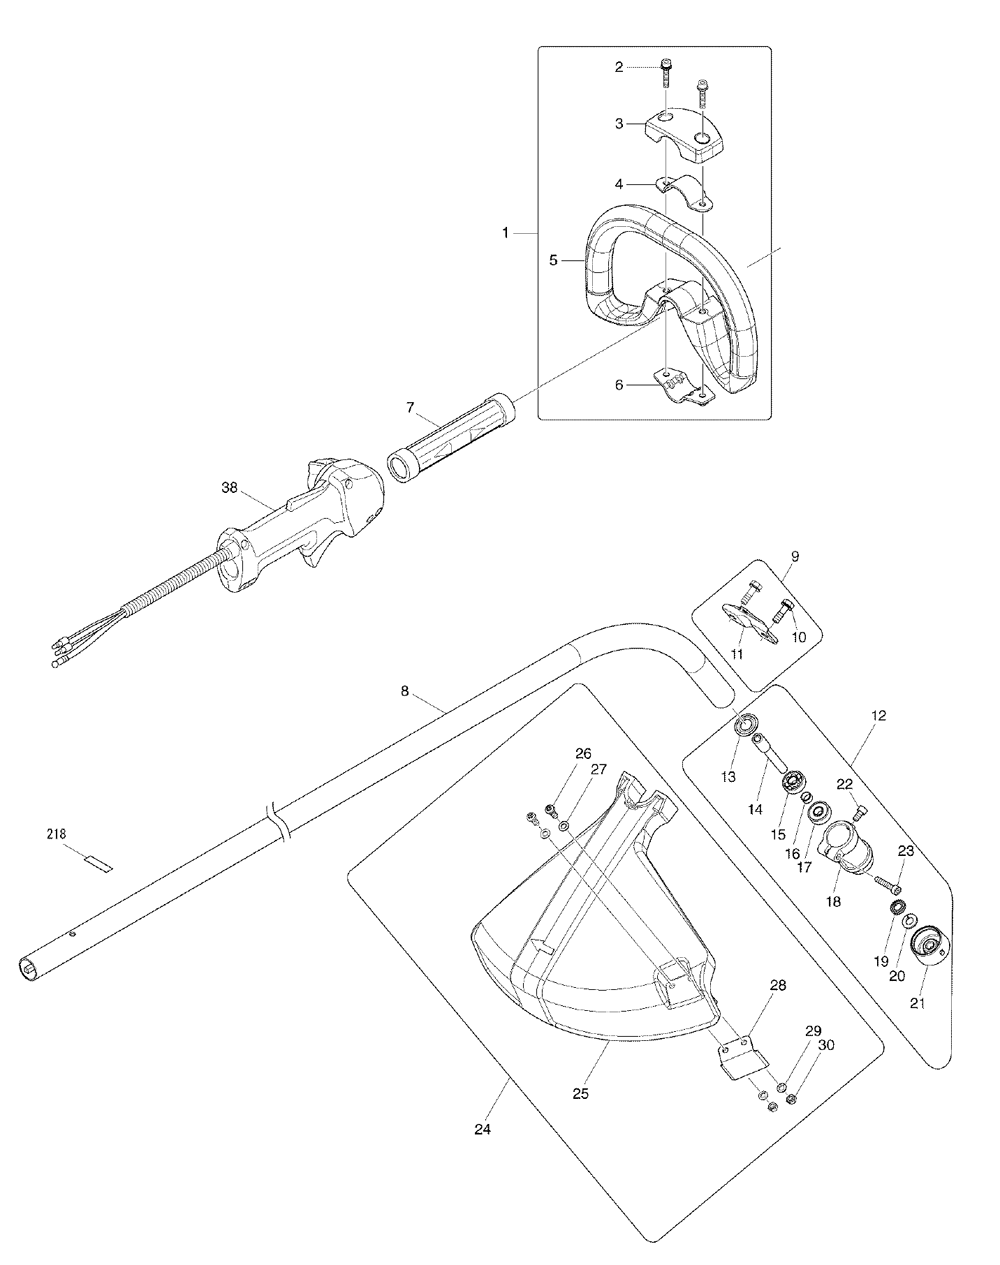 Buy Makita Er2650lh Replacement Tool Parts A Href Wilton 748a List And Diagram Ereplacementpartscom Schematic